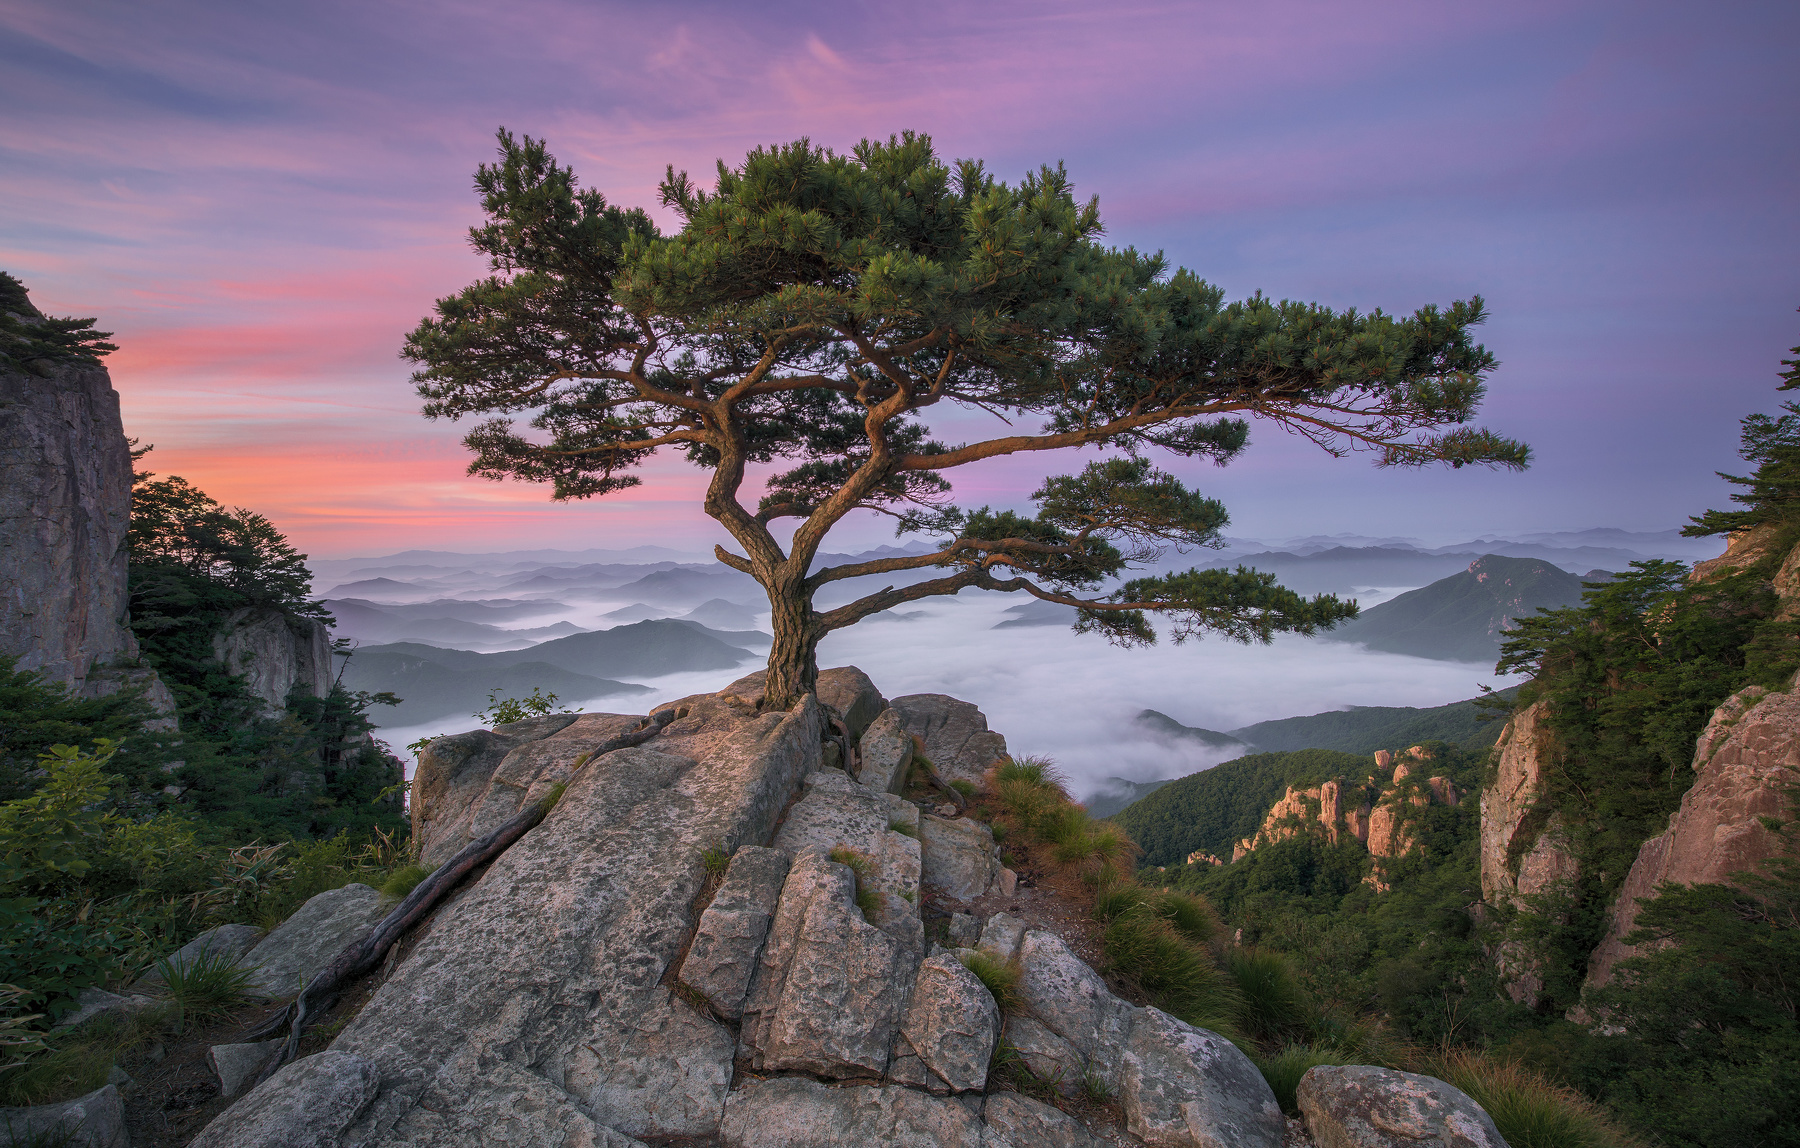 landscape trees sky pine trees mountains